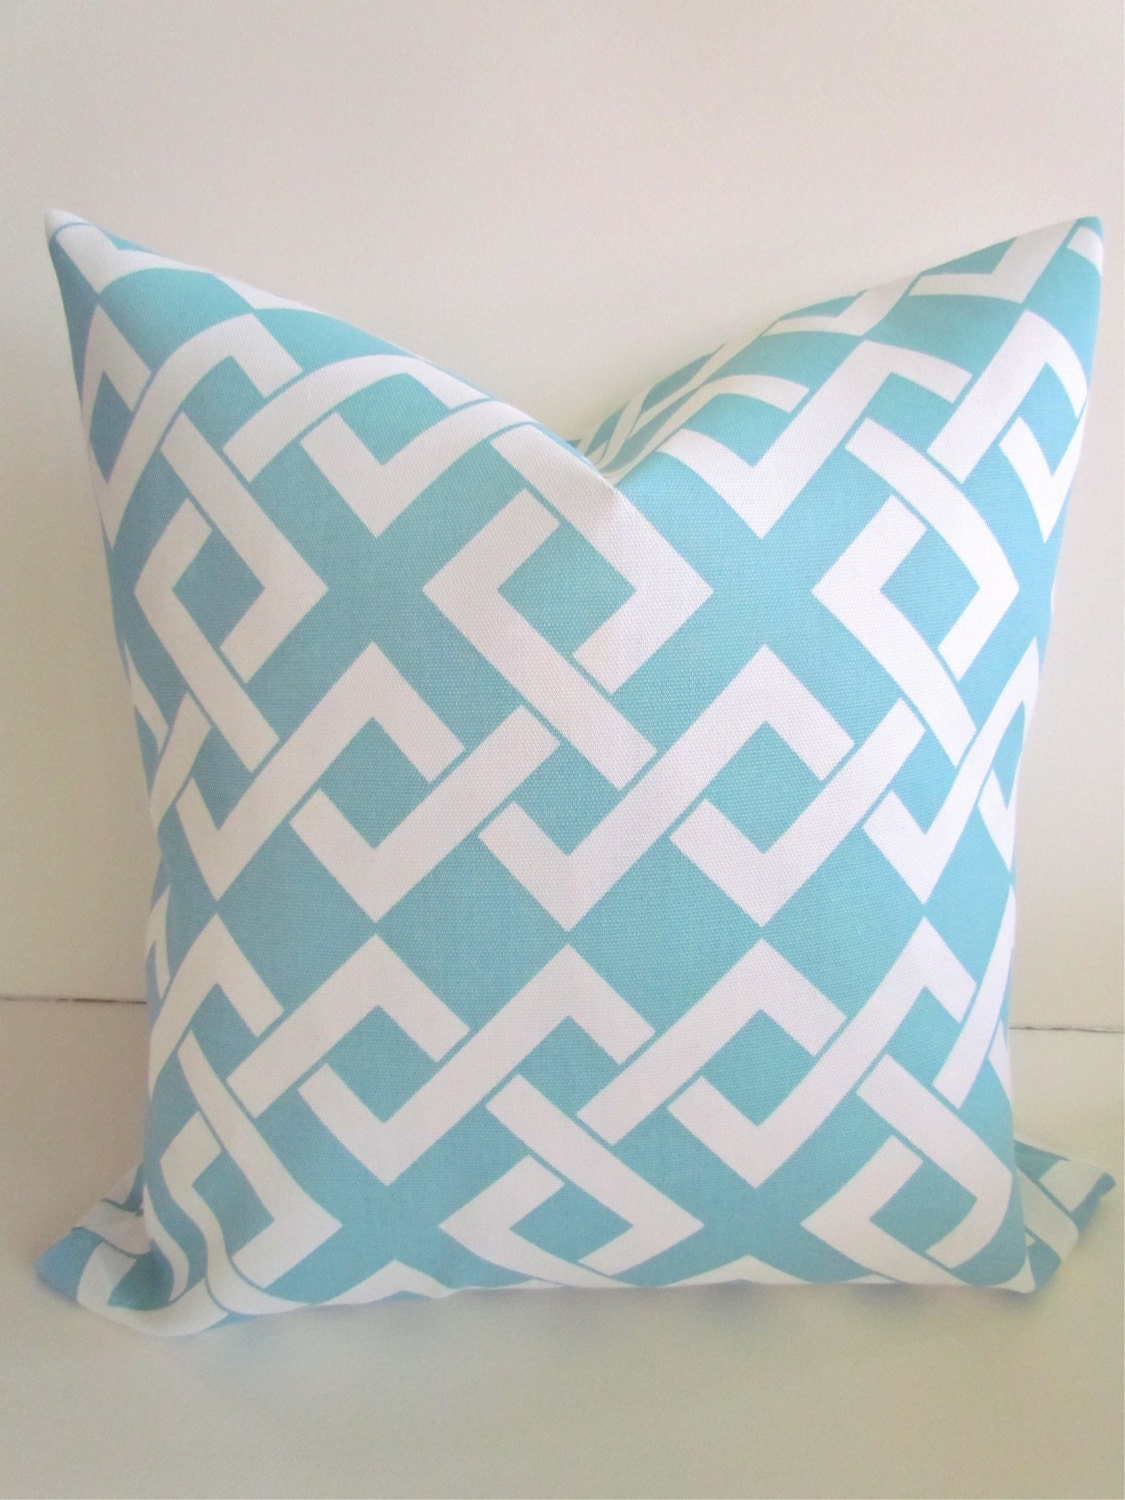 Etsy Throw Pillow Sets : OUTDOOR PILLOWS Light Blue Throw Pillow Covers Blue Outdoor